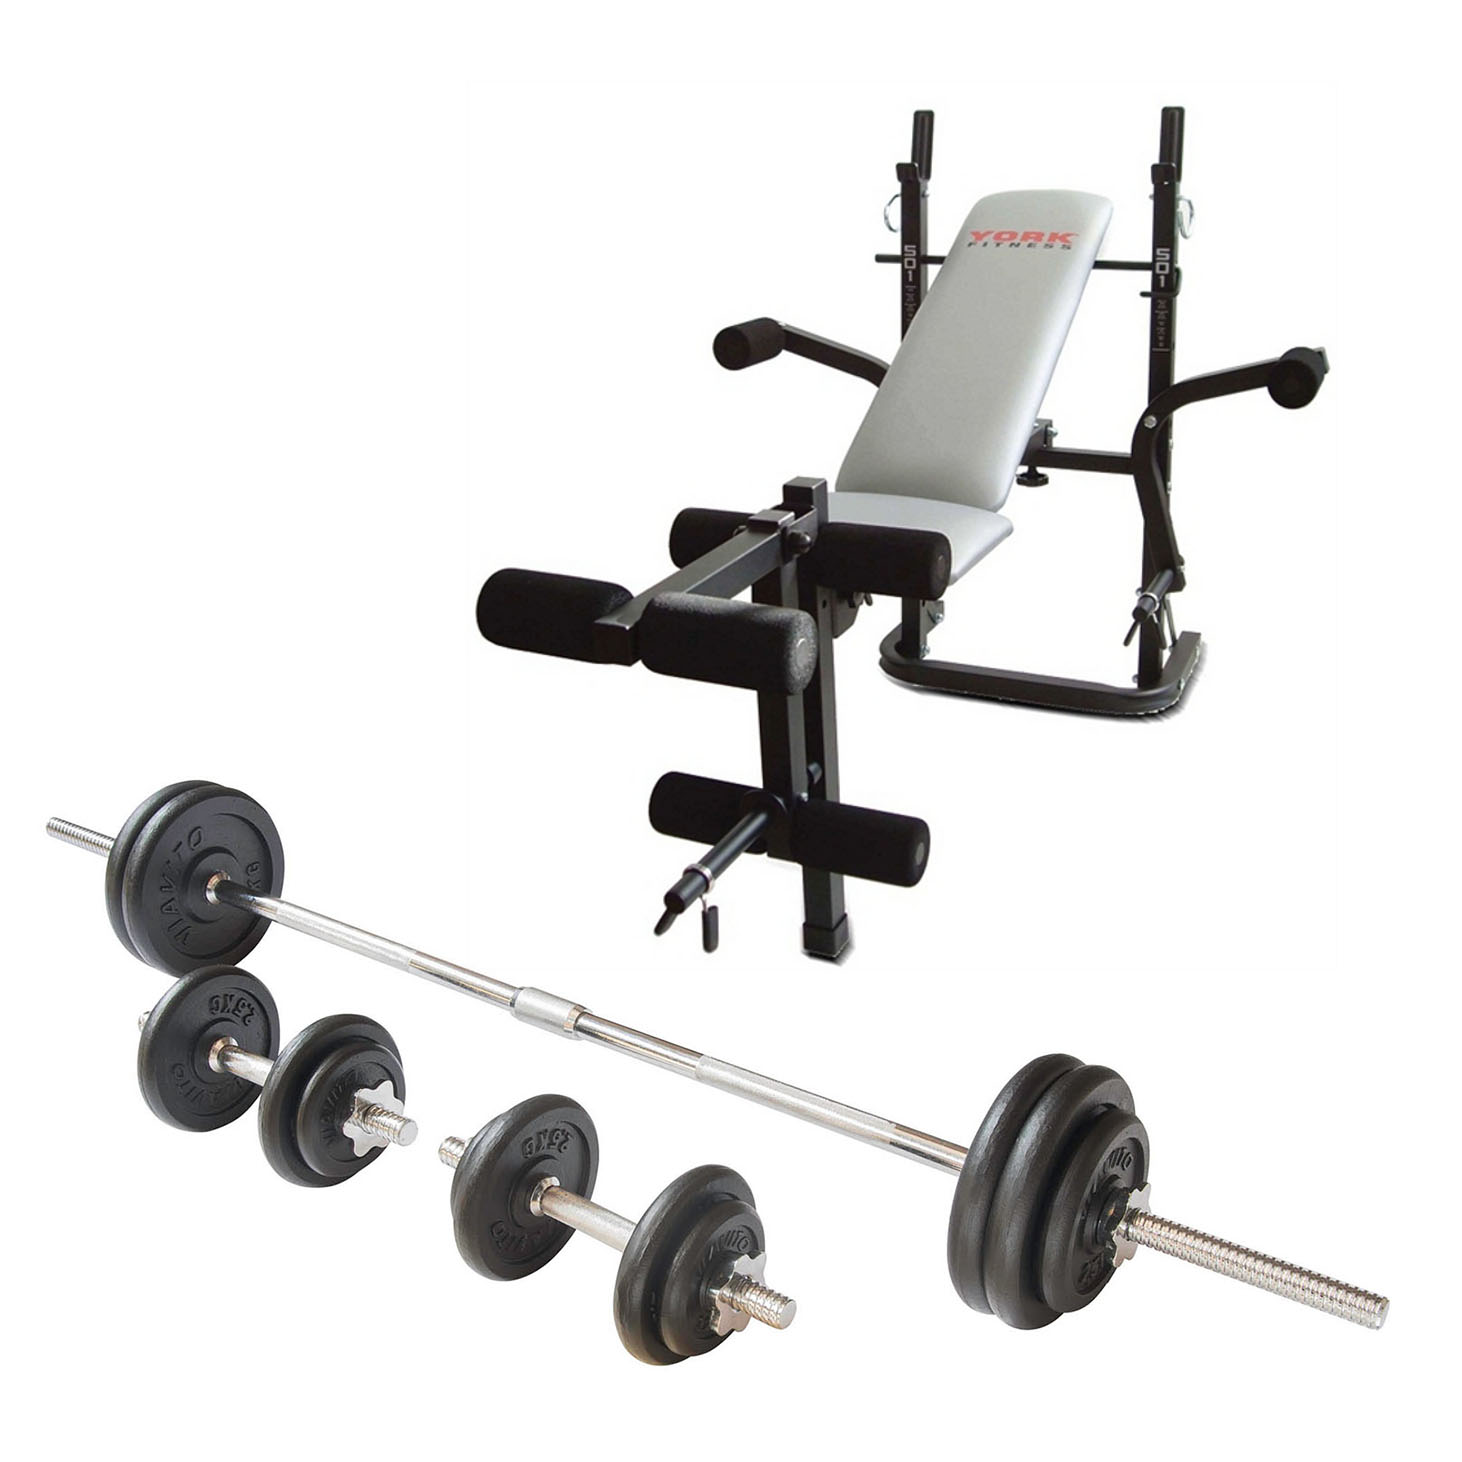 Buy cheap chrome dumbbell set compare weight training prices for best uk deals Bench and weight set